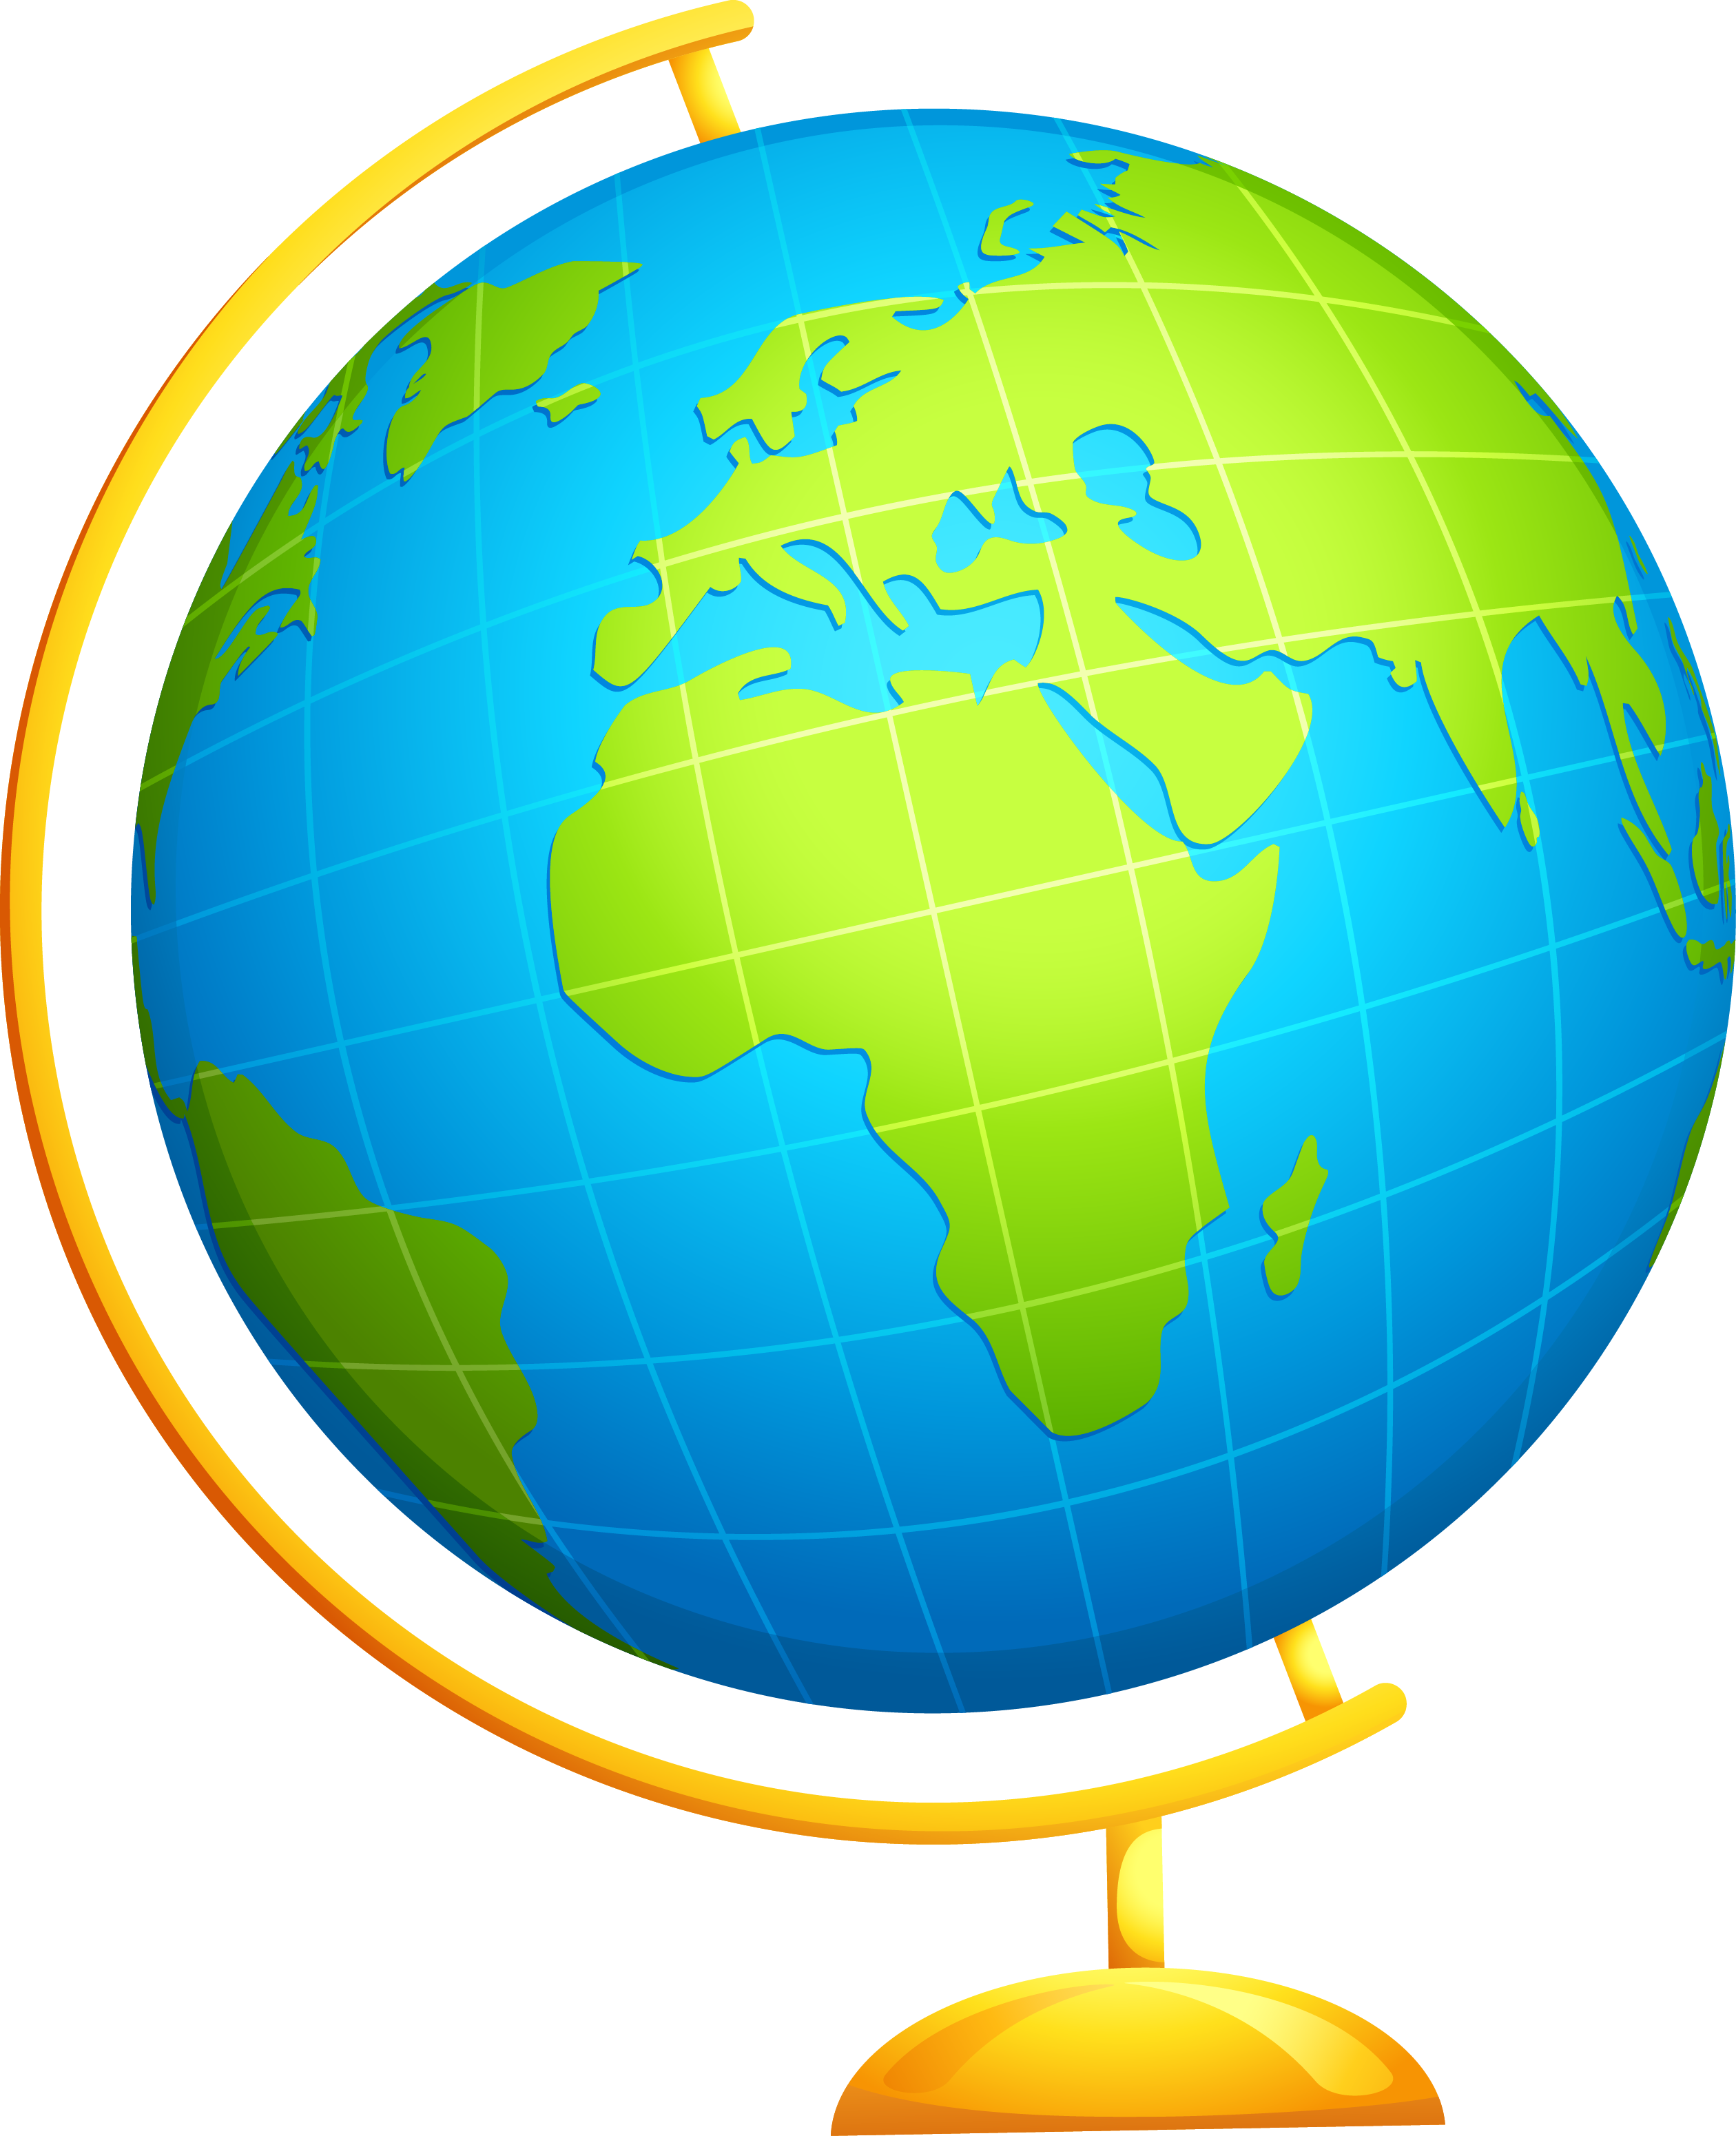 Clip art portable network. Clipart globe geography